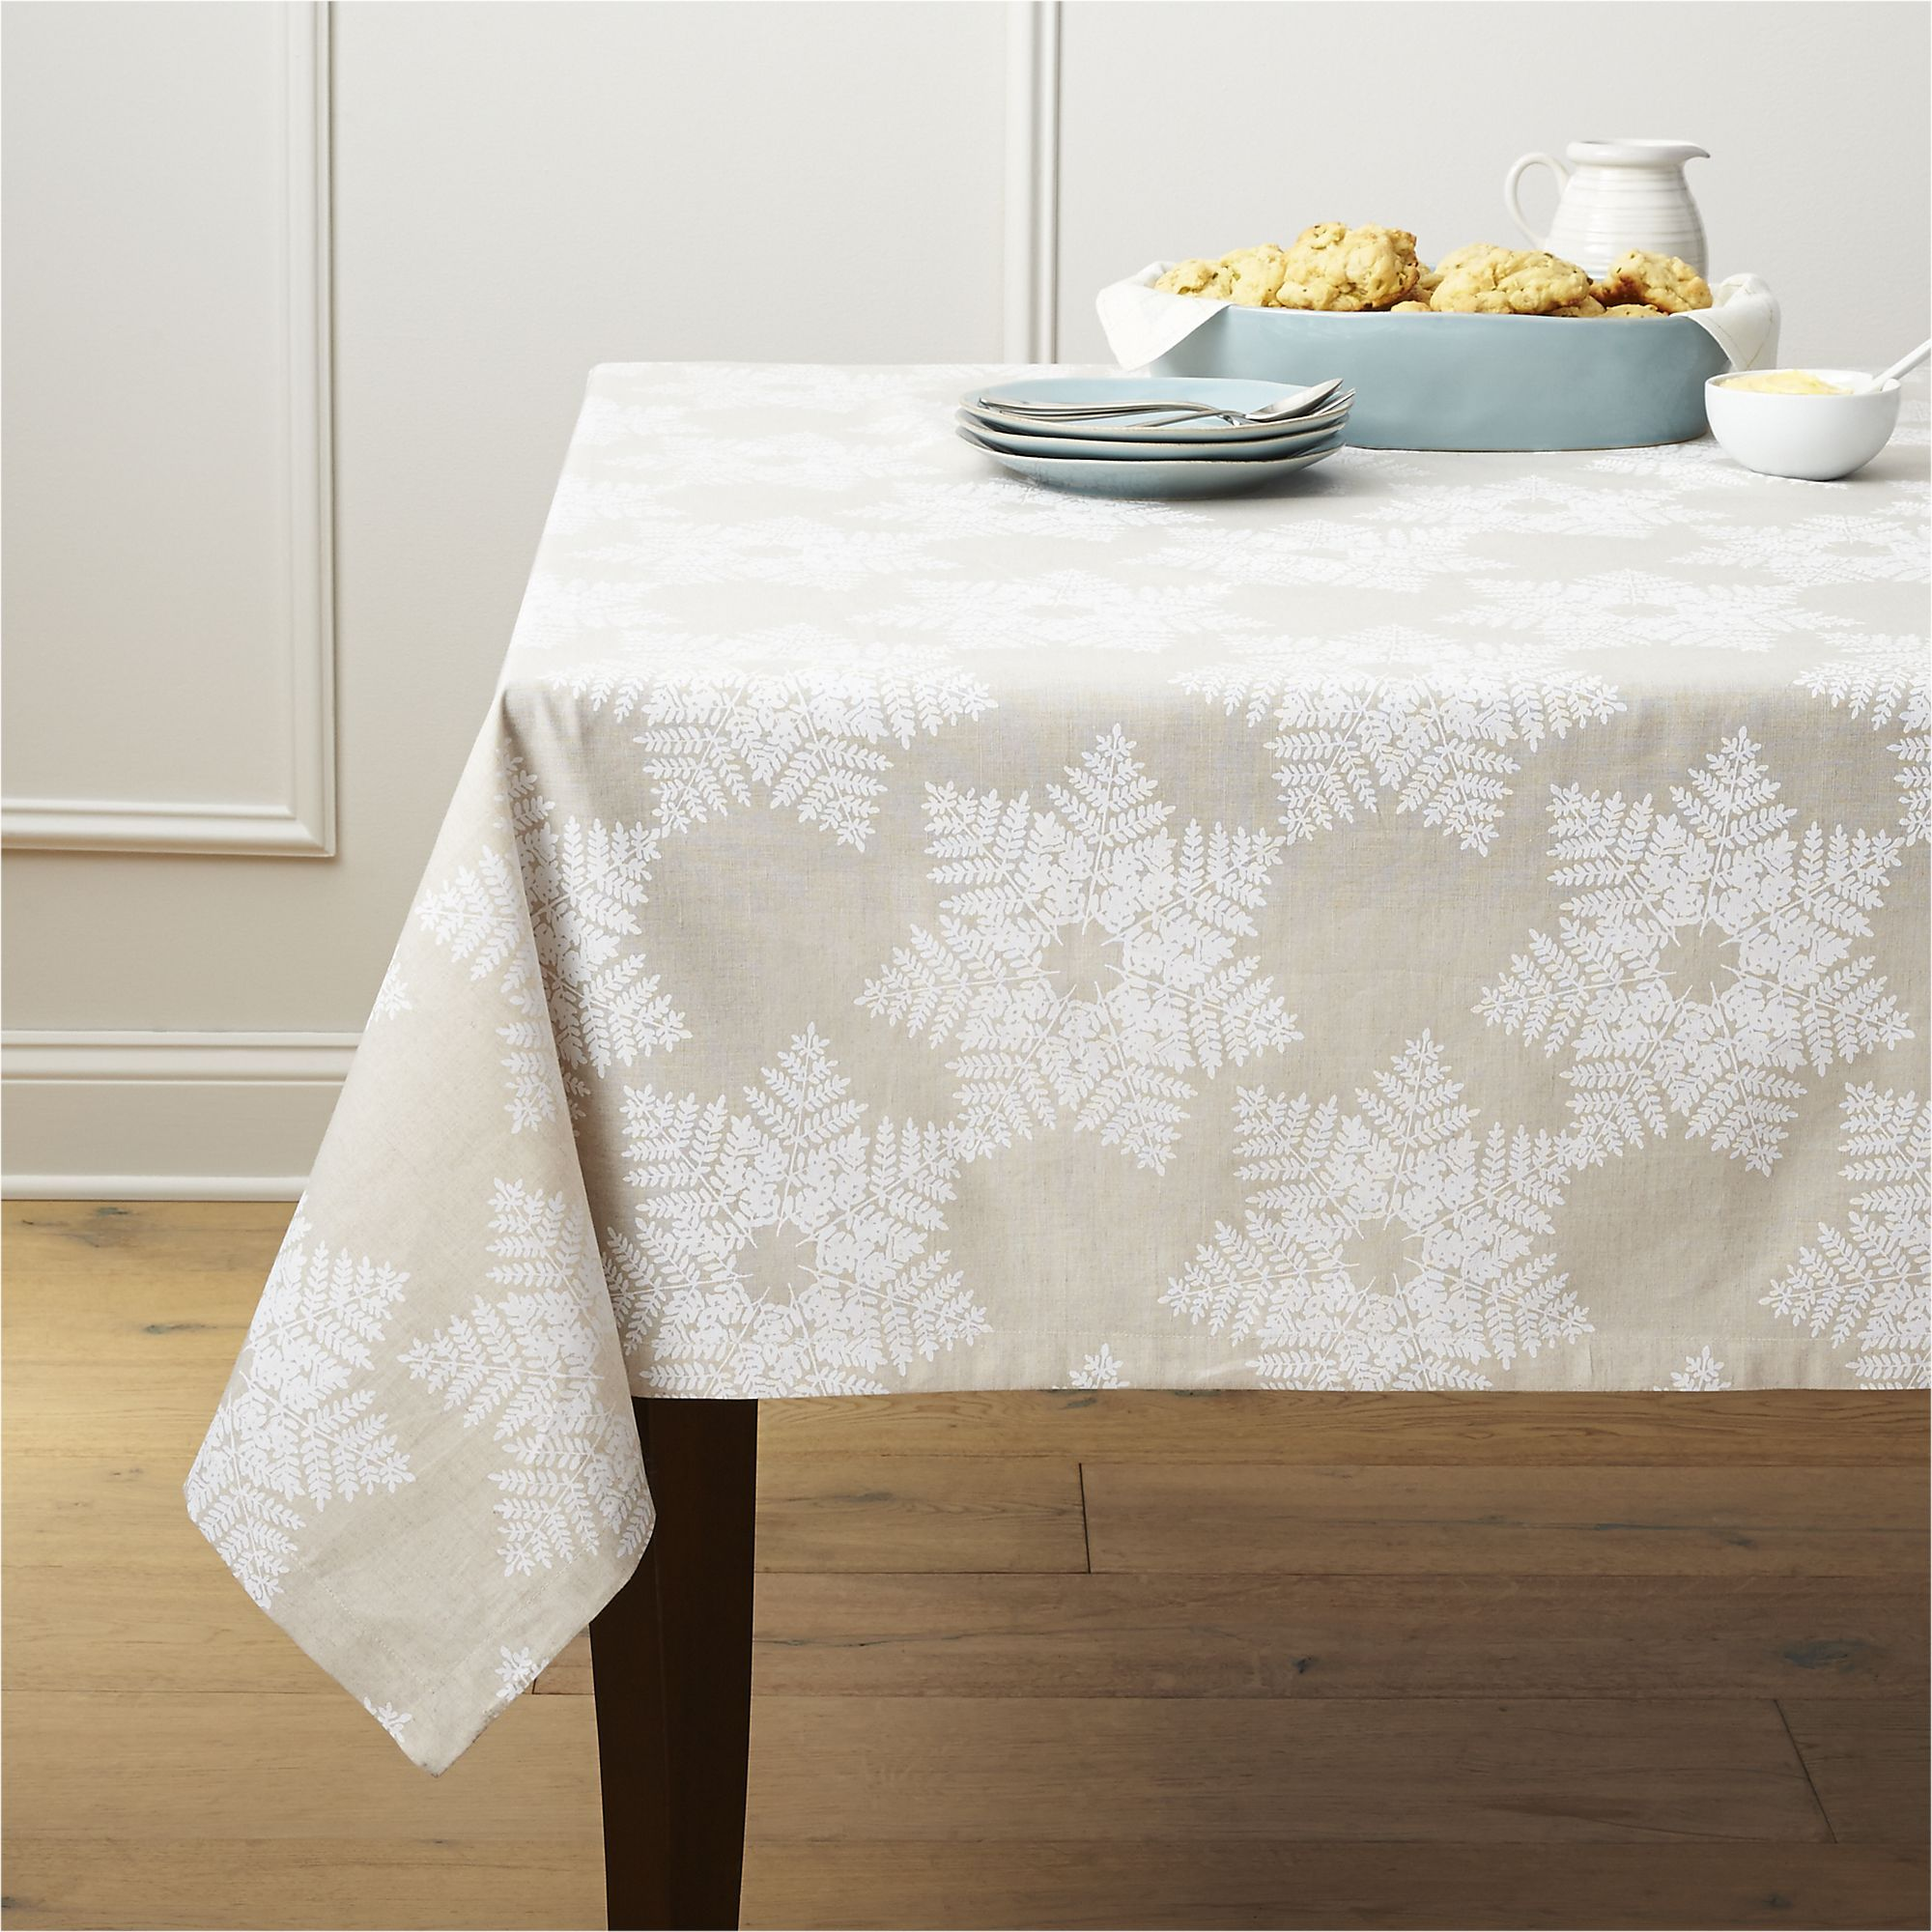 Snowflake White Tablecloth Crate And Barrel Christmas Crate